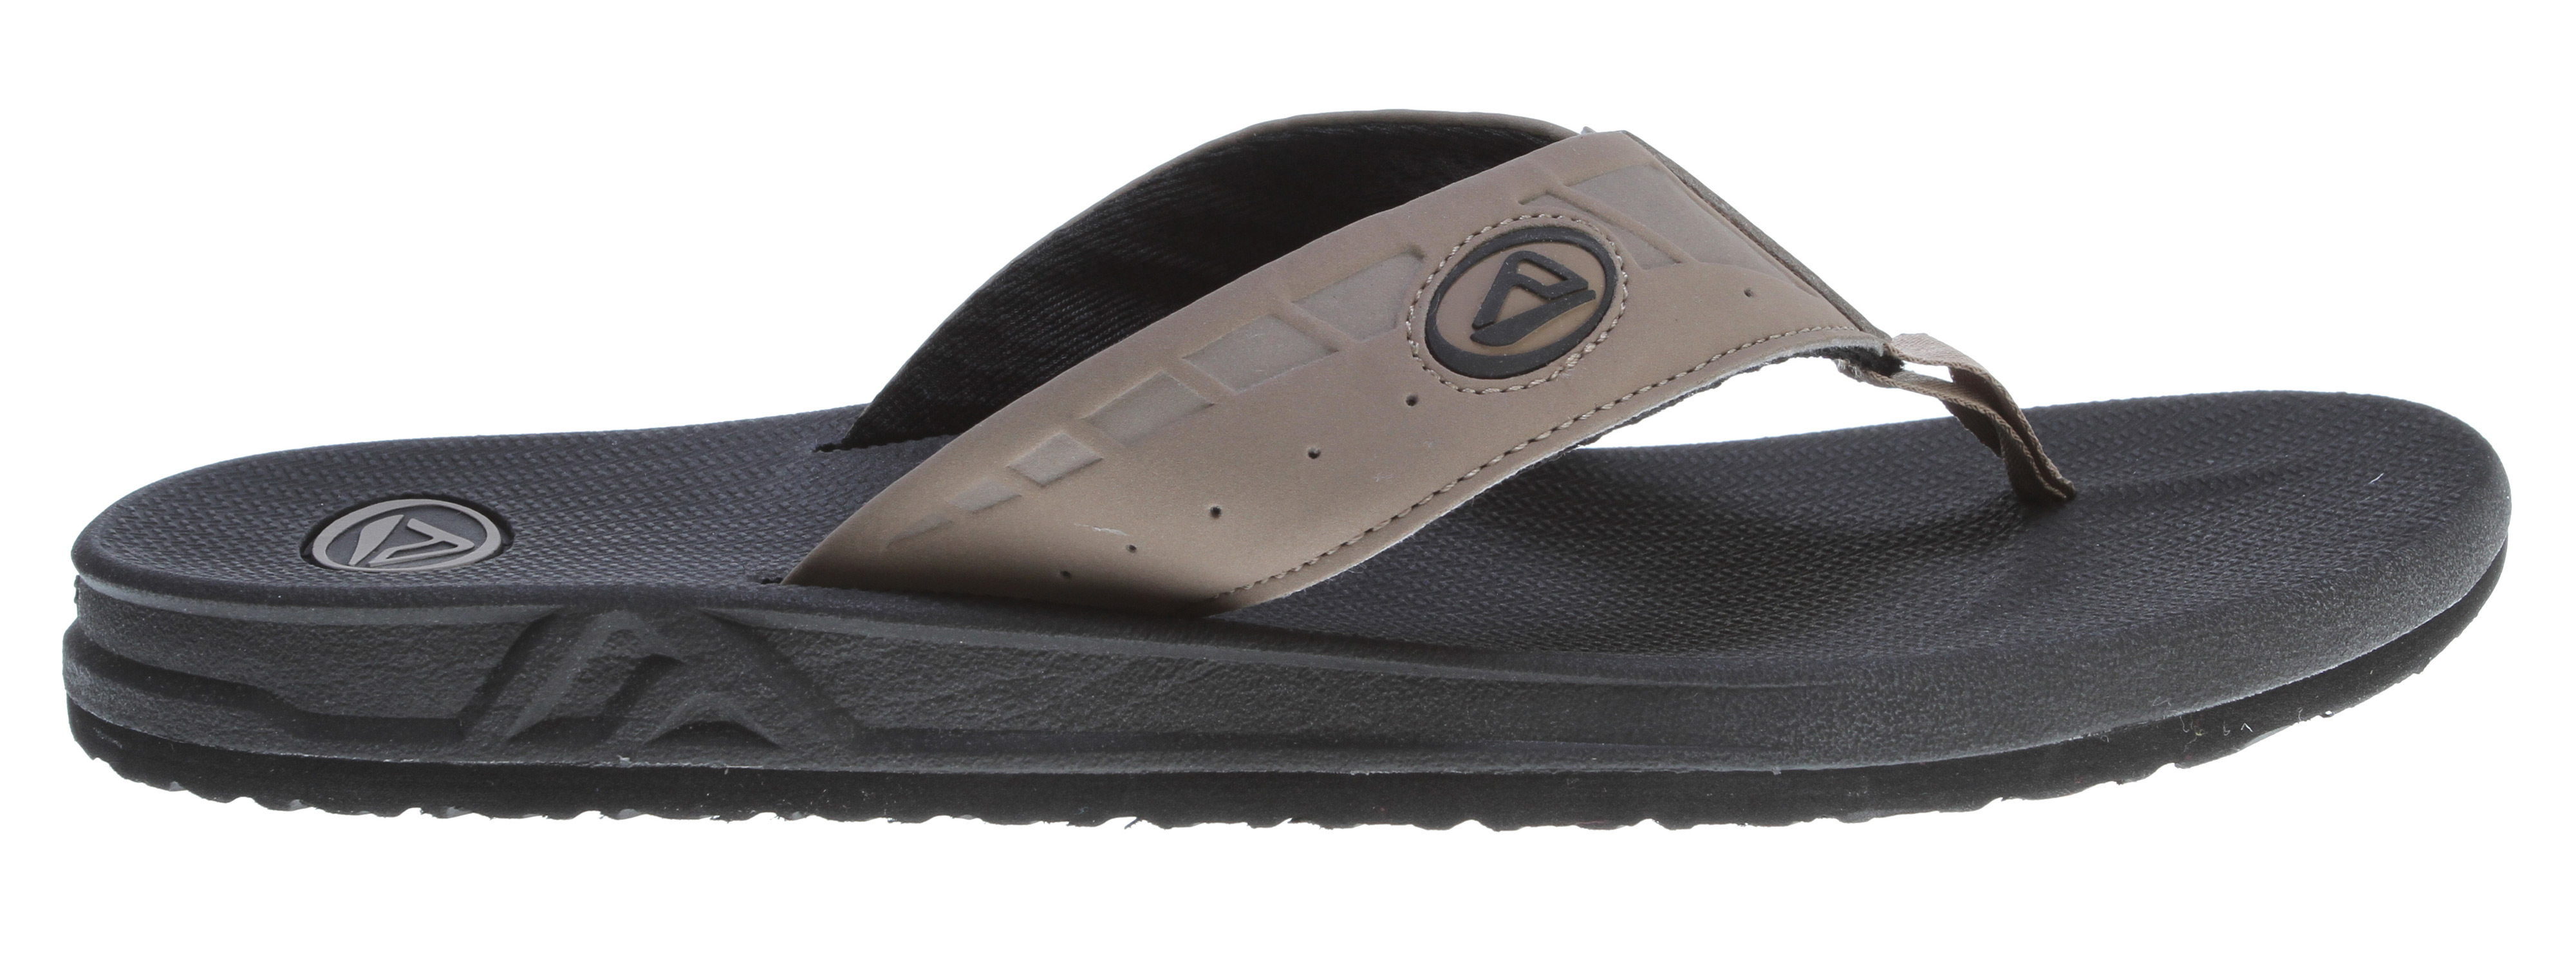 Surf Key Features of the Reef Phantoms Sandals: soft, comfortable, water friendly synthetic nubuck upper with air mesh lining contoured compression molded eva footbed with anatomical arch support Durable and grippy molded high density eva outsole - $20.95